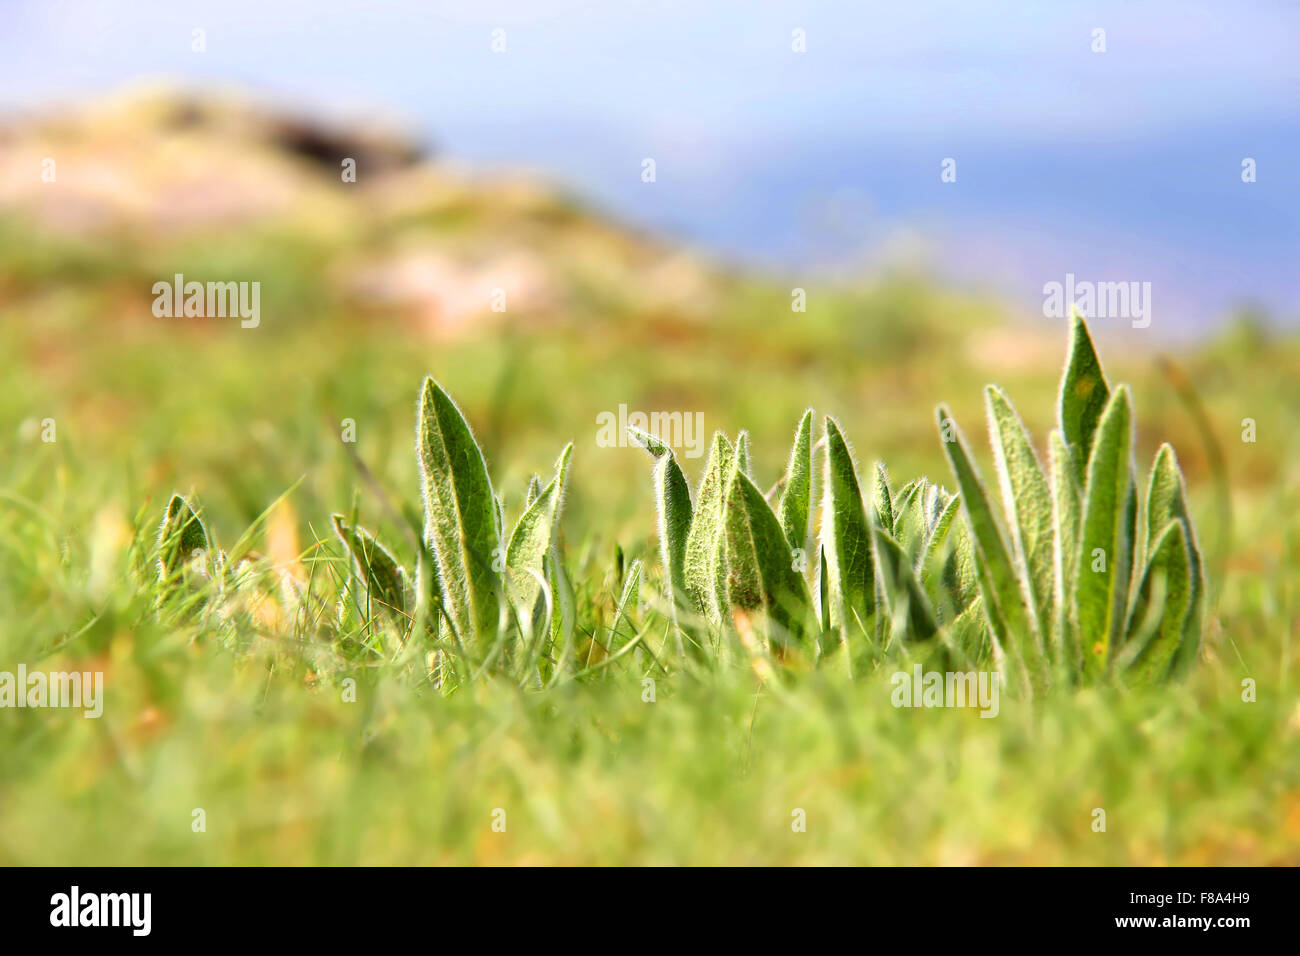 Grasses photographed on the mountain meadow - Stock Image